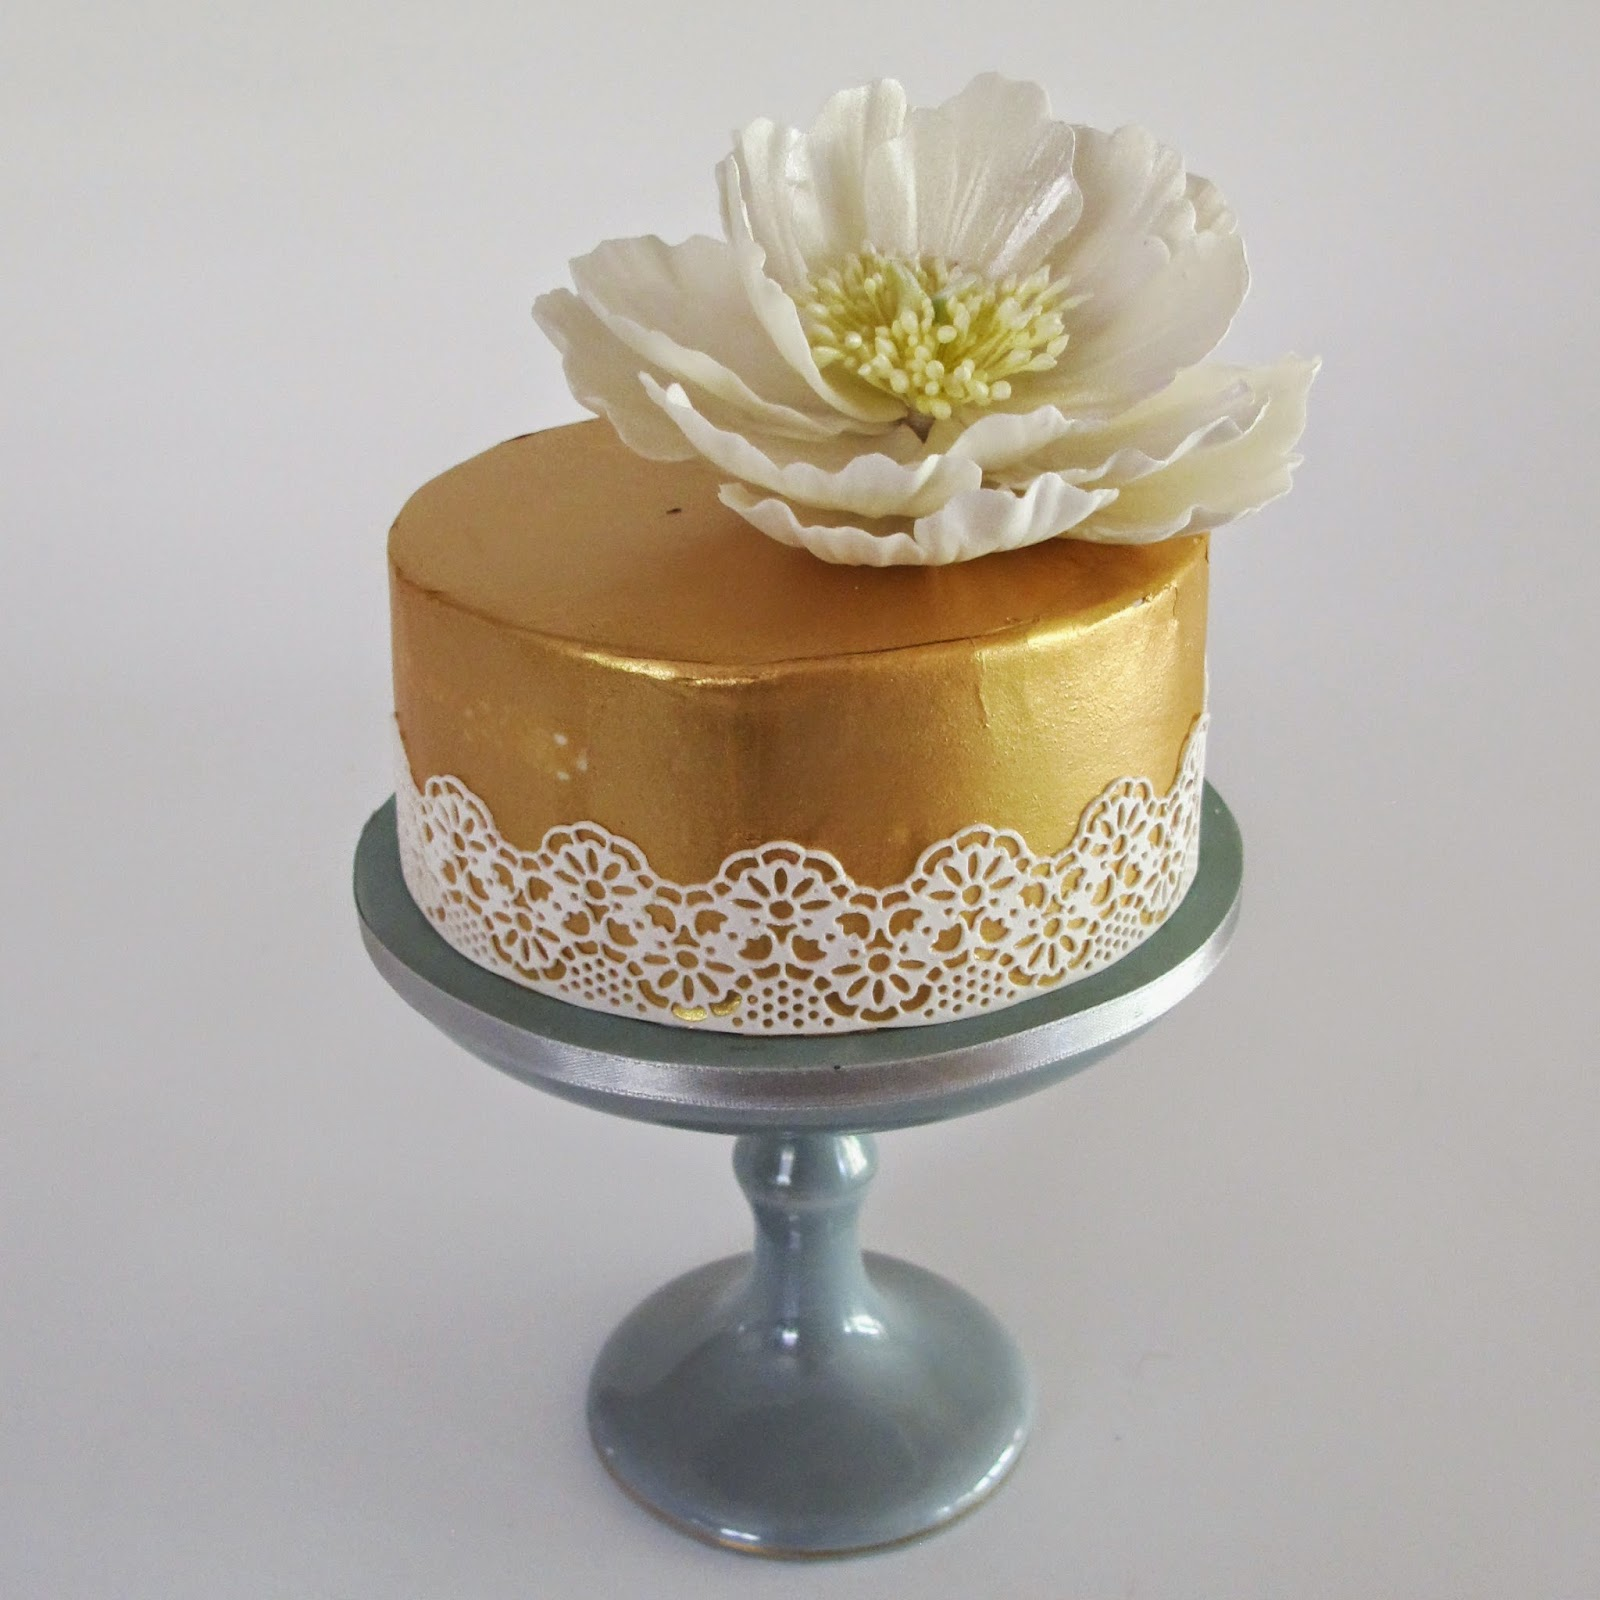 Decorating A Cake With Gold Leaf : Anna Maria Cake Design: How to create faux Gold leaf using ...